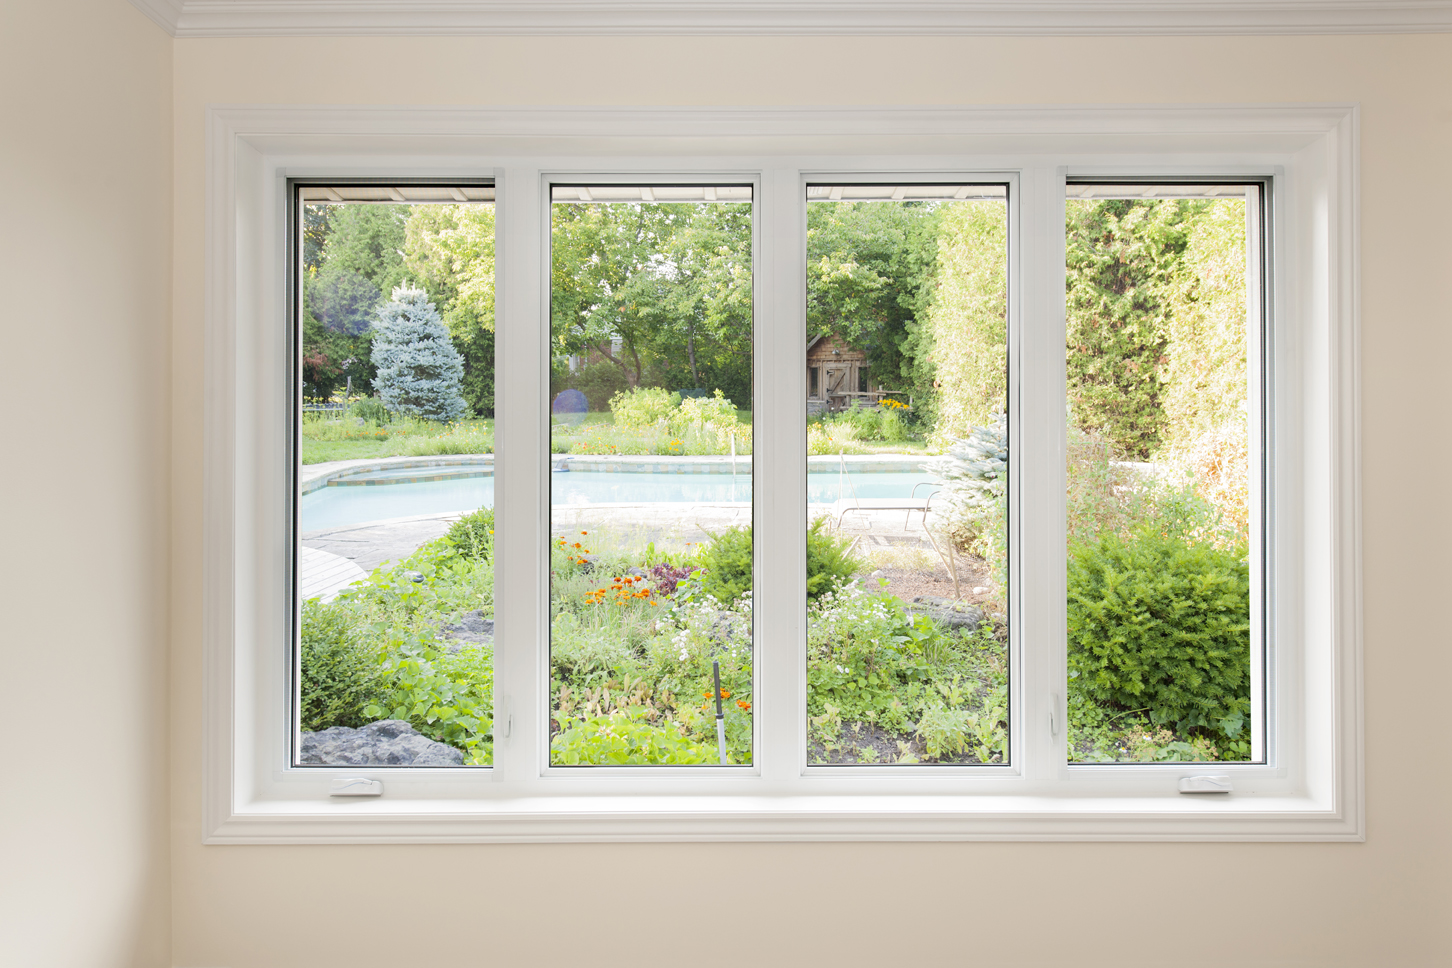 Affordable Construction Co a leading window & door replacement company Southeast MI & Northeast OH including Ann Arbor, Monroe County Toledo, Maumee, Perrysburg, Findlay & surrounding areas